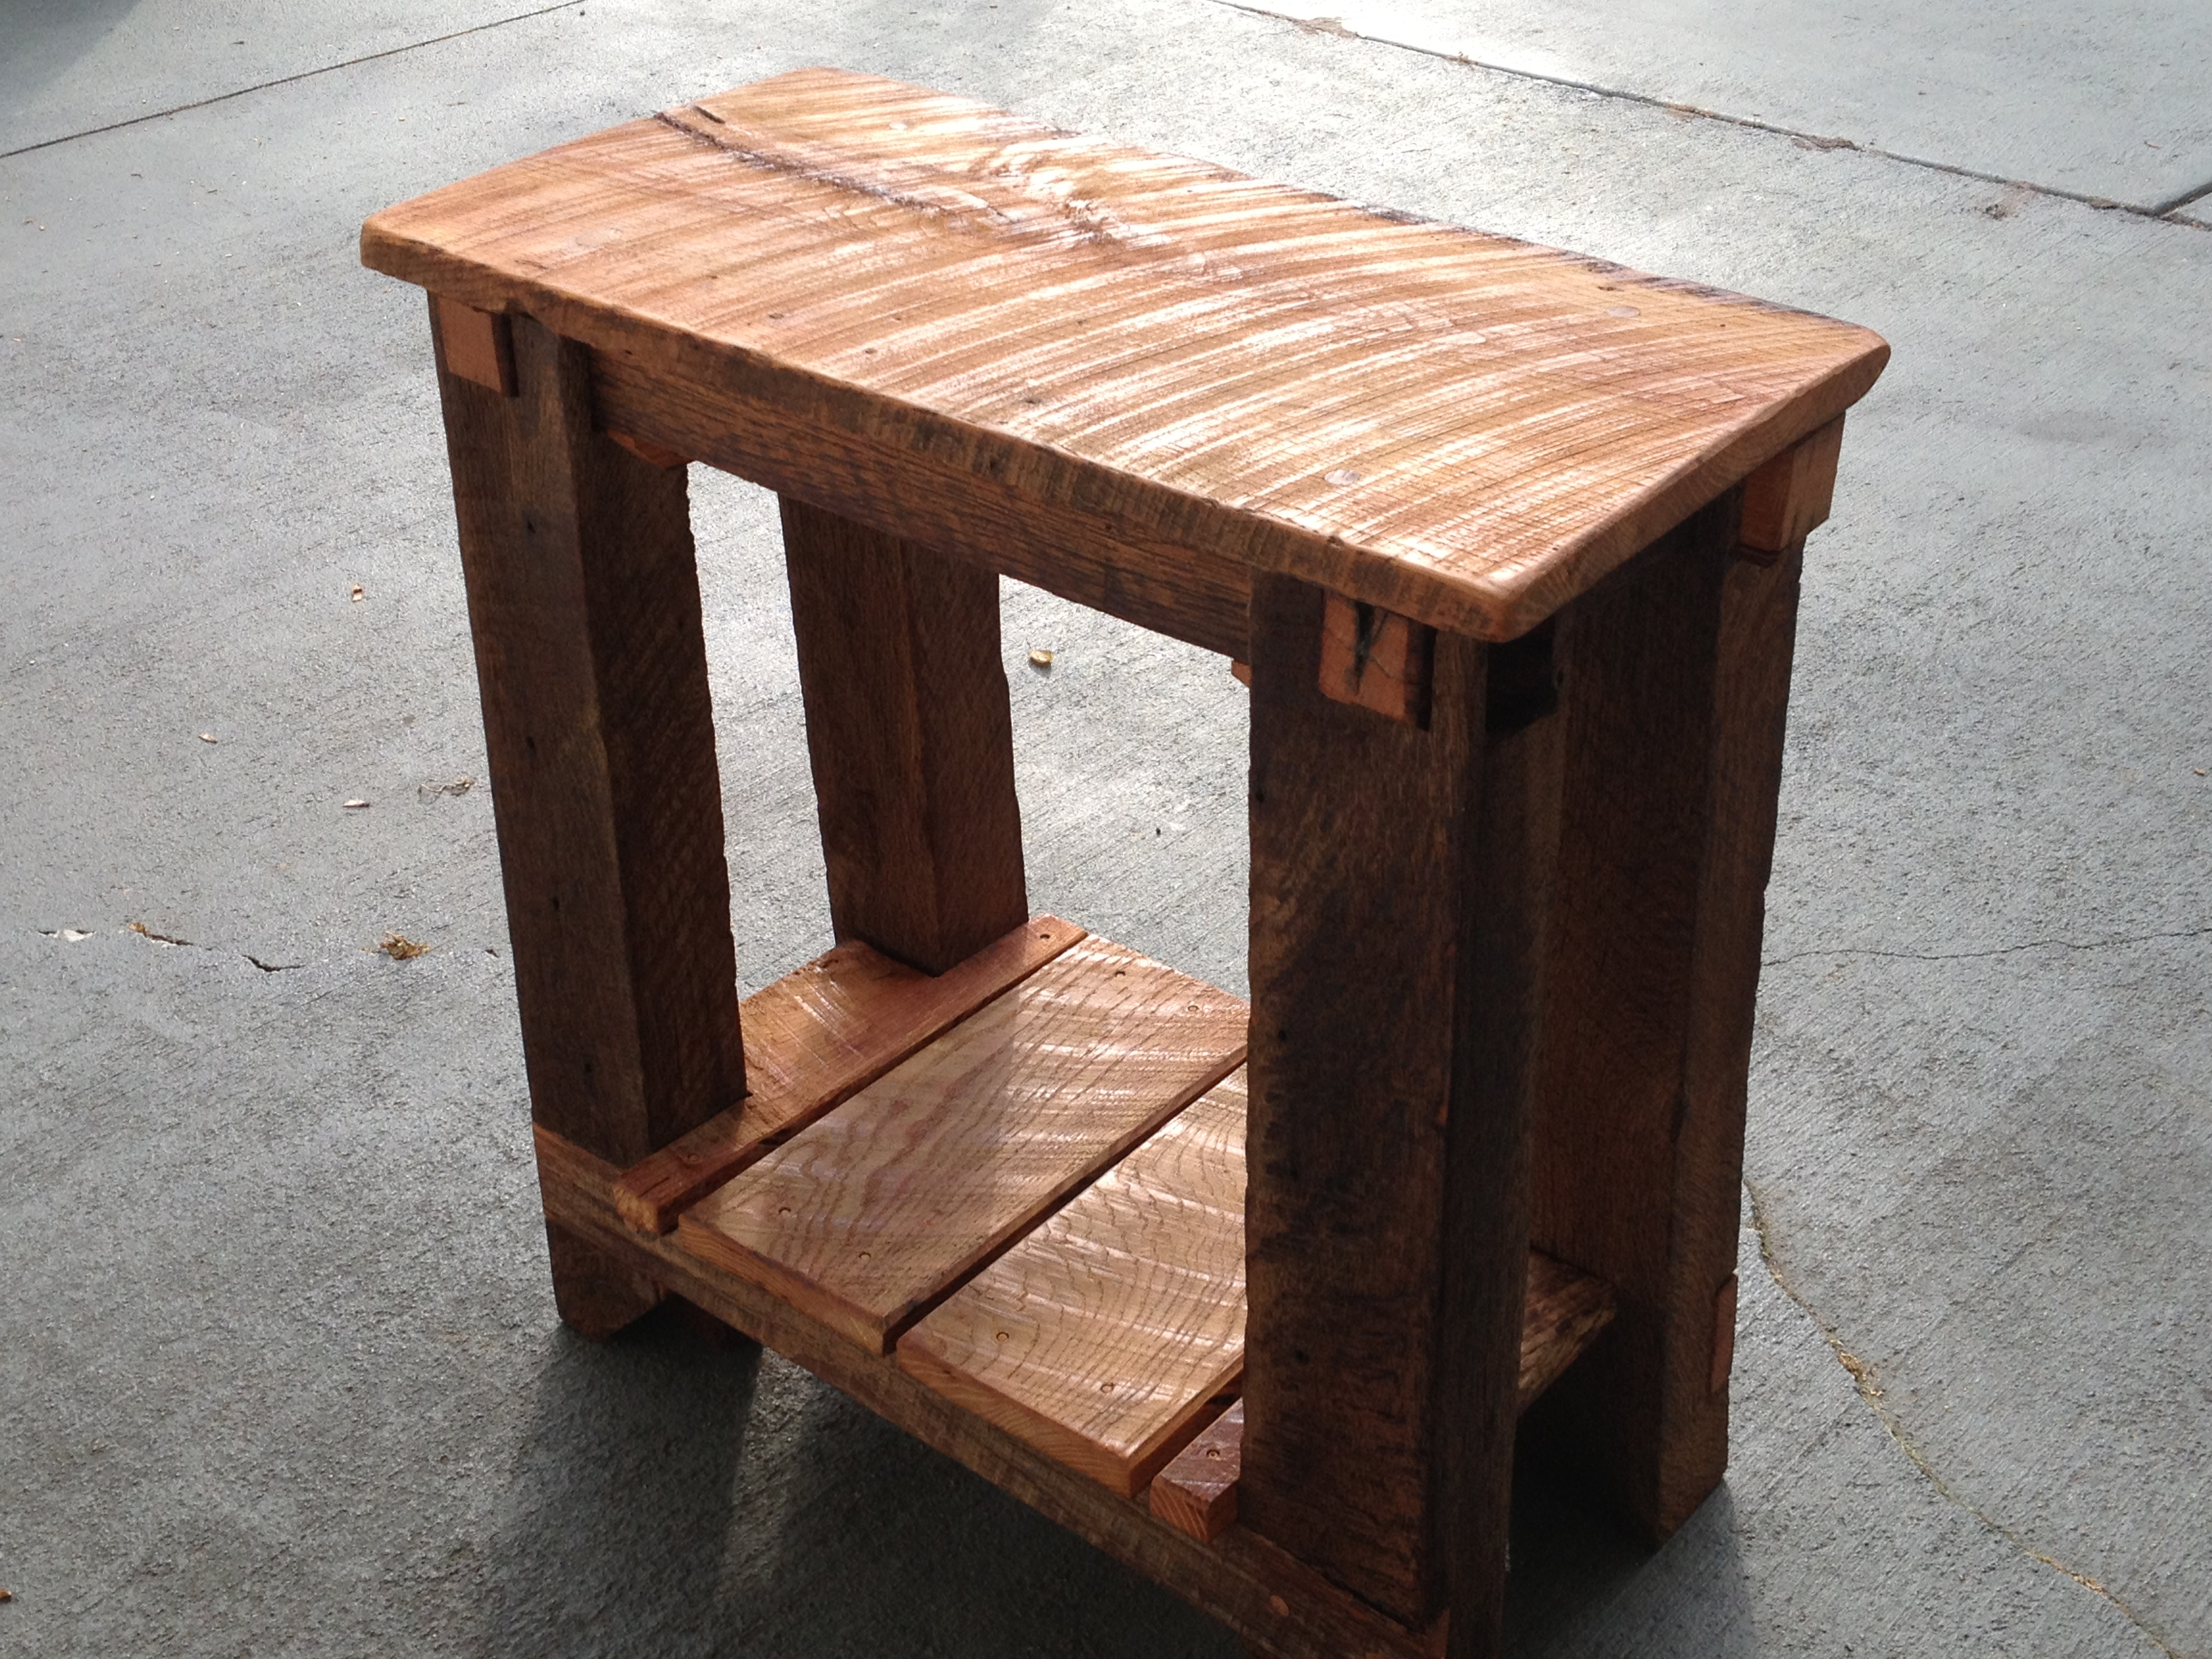 barnwood tables the coastal craftsman img accent table long natural finish reclaimed white oak thecoastalcraftsman lucite sofa screen porch furniture luxury tablecloths and brass